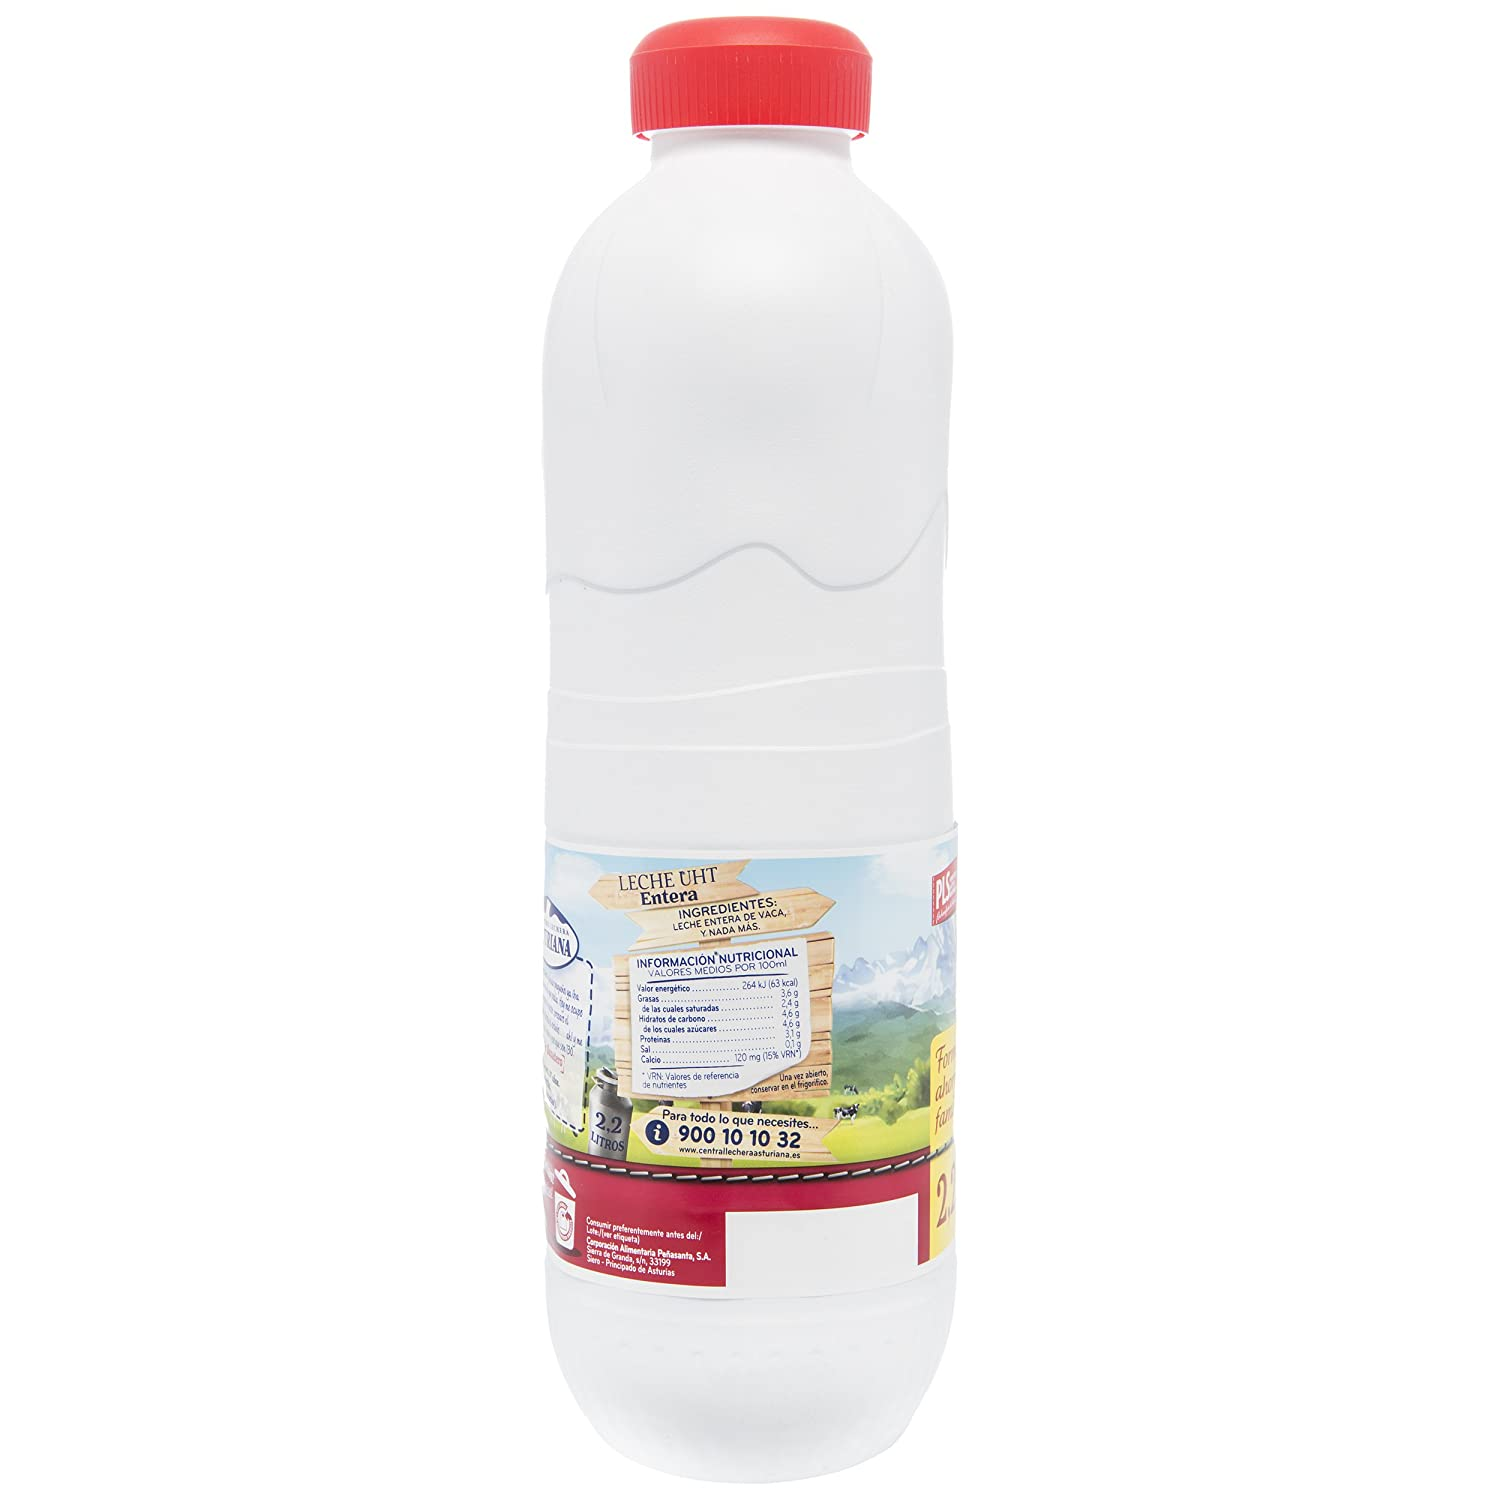 Central Lechera Asturiana Leche Entera - Paquete de 6 x 2200 ml - Total: 13200 ml: Amazon.es: Amazon Pantry